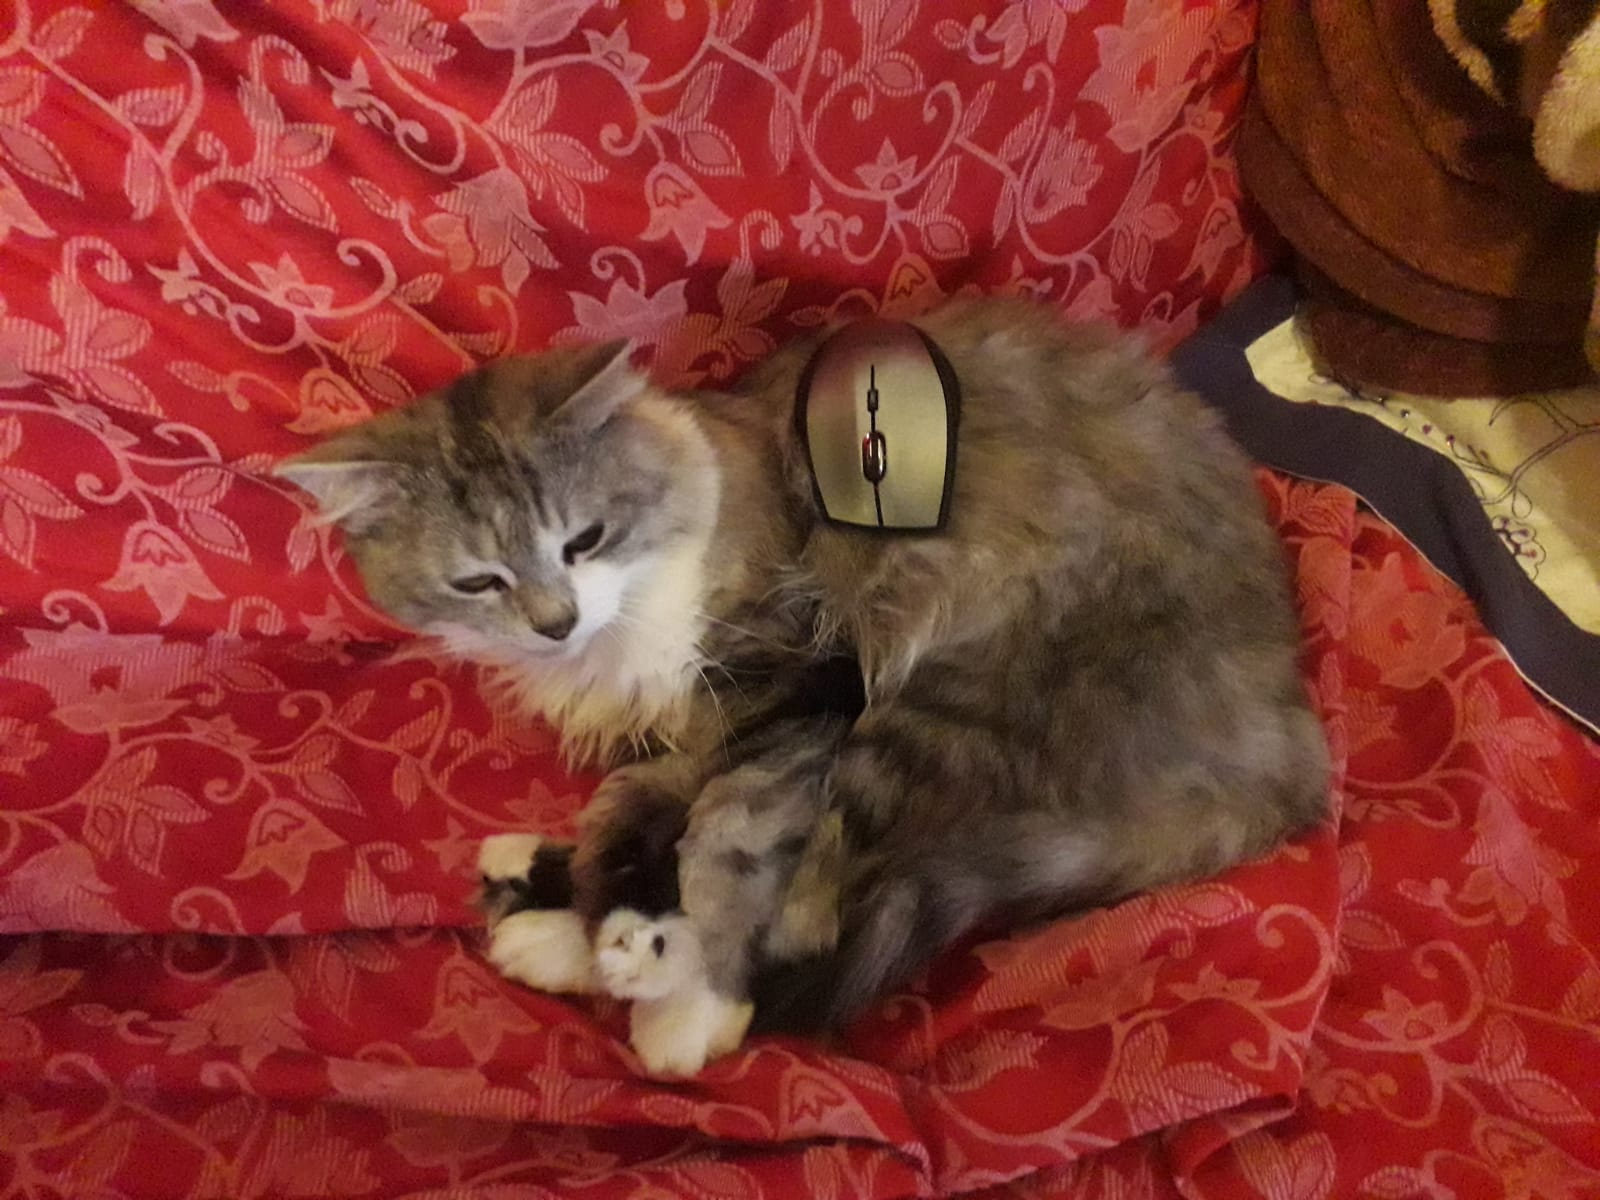 A cat lies with a computer mouse on its back